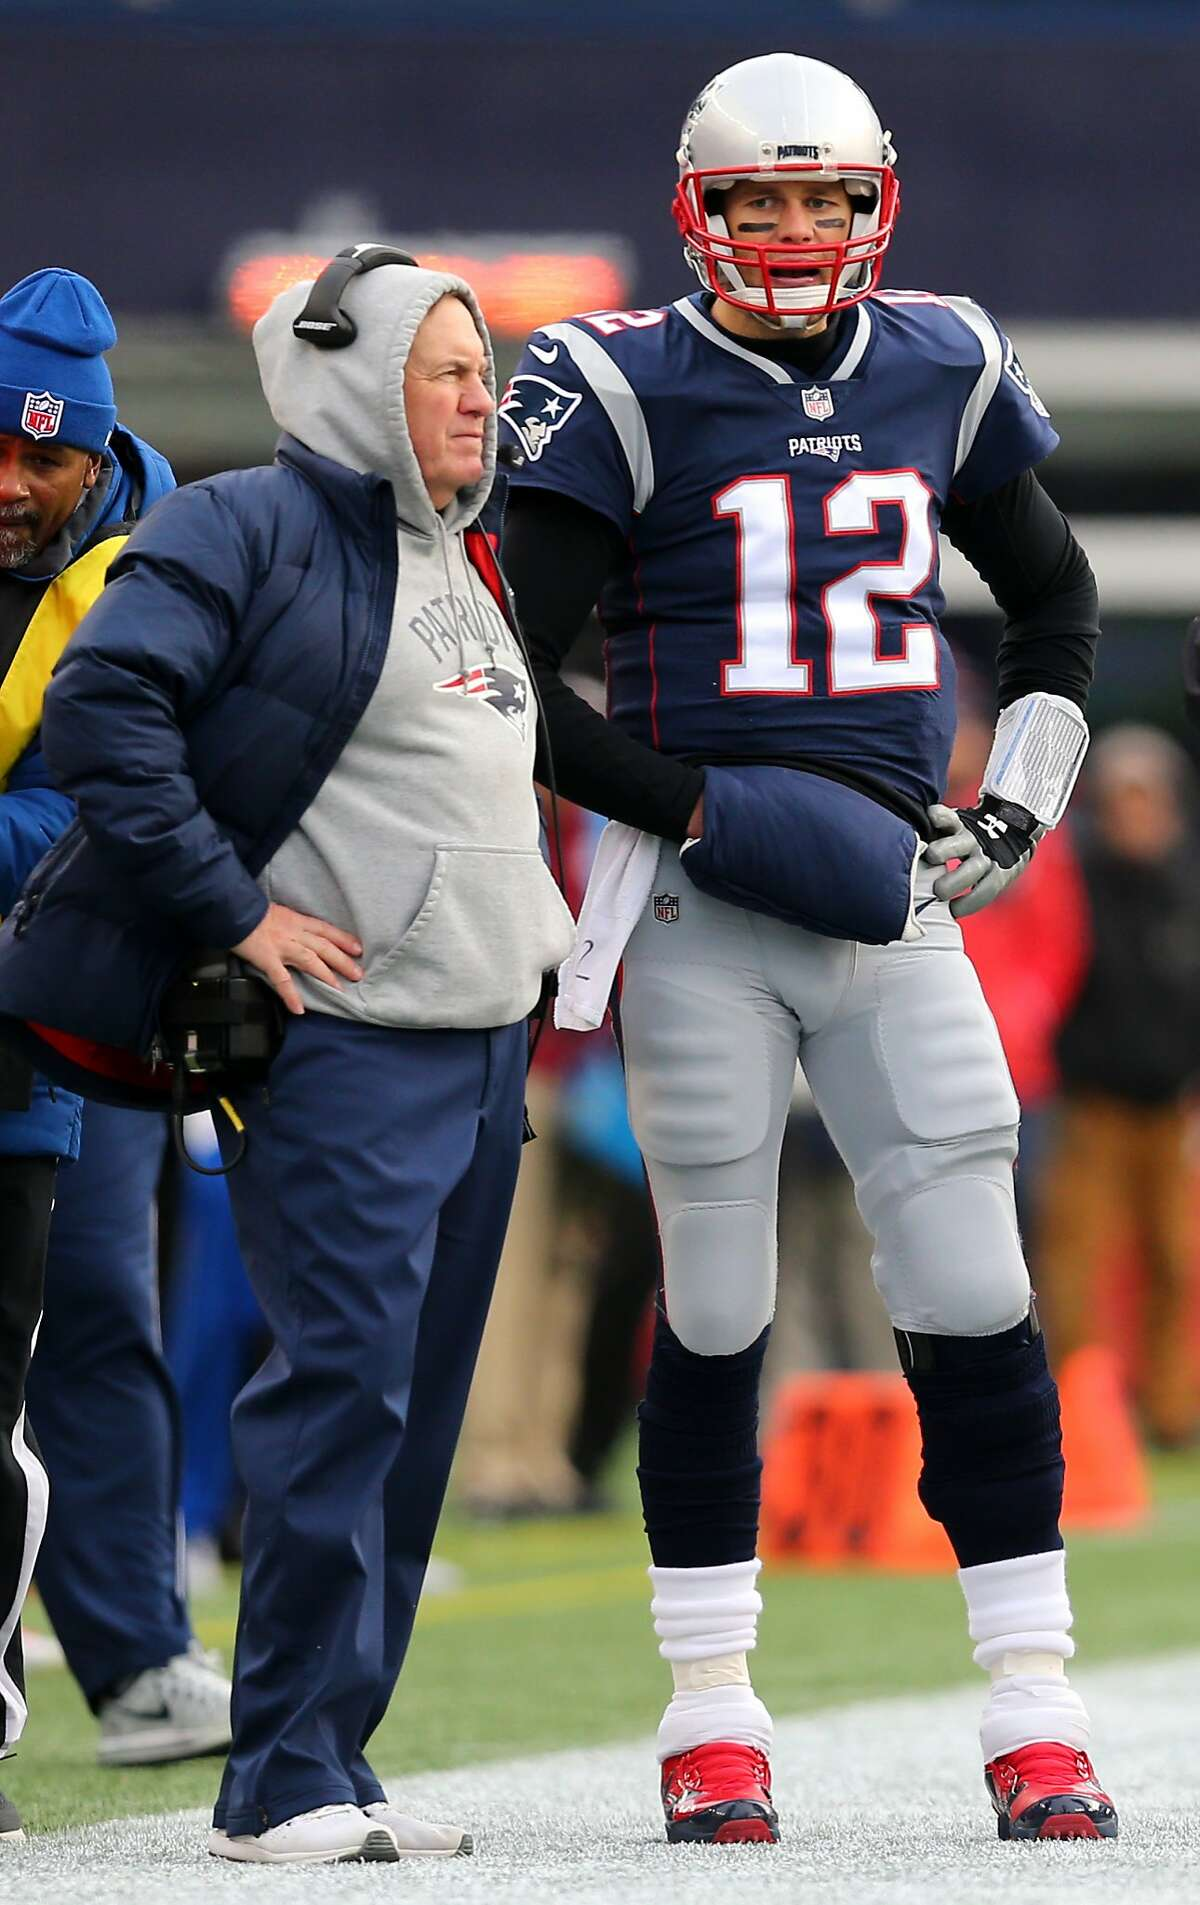 Head coach Bill Belichick of the New England Patriots stands with Tom Brady #12 during the second half against the Buffalo Bills at Gillette Stadium on December 24, 2017 in Foxboro, Massachusetts. (Photo by Maddie Meyer/Getty Images)